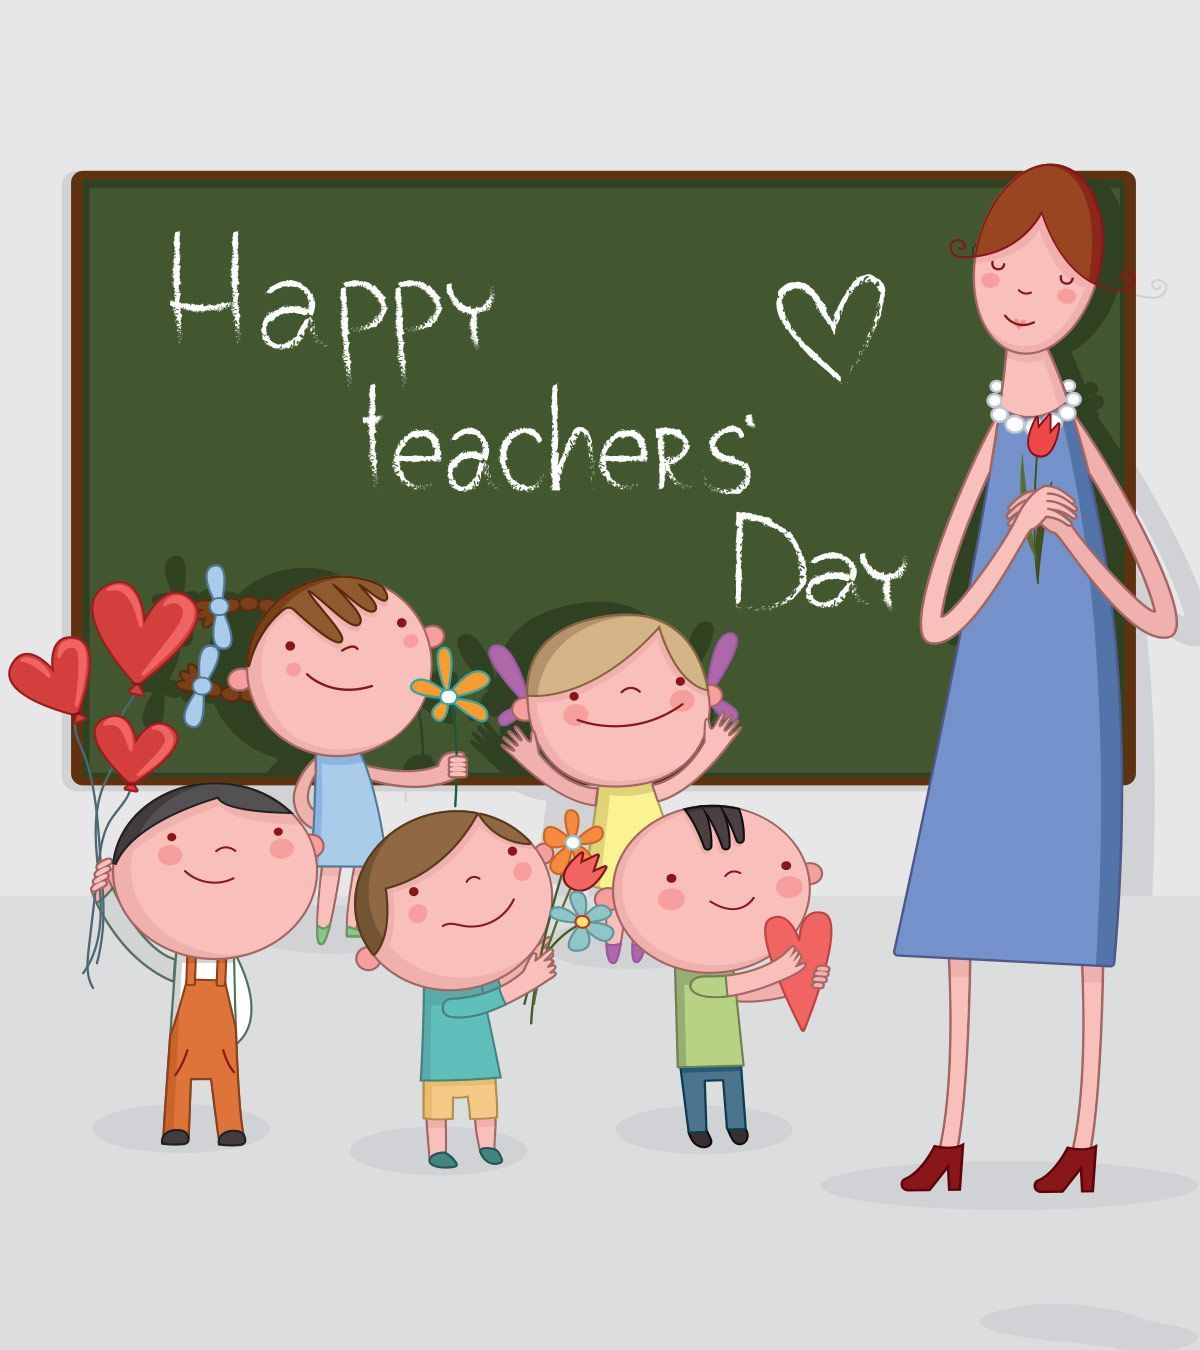 11 Beautiful Card And Gift Ideas For Teachers Day Teachersdaycard 11 Beautiful Card And Gift Ideas For Tea Teacher Cards Teachers Day Card Happy Teachers Day